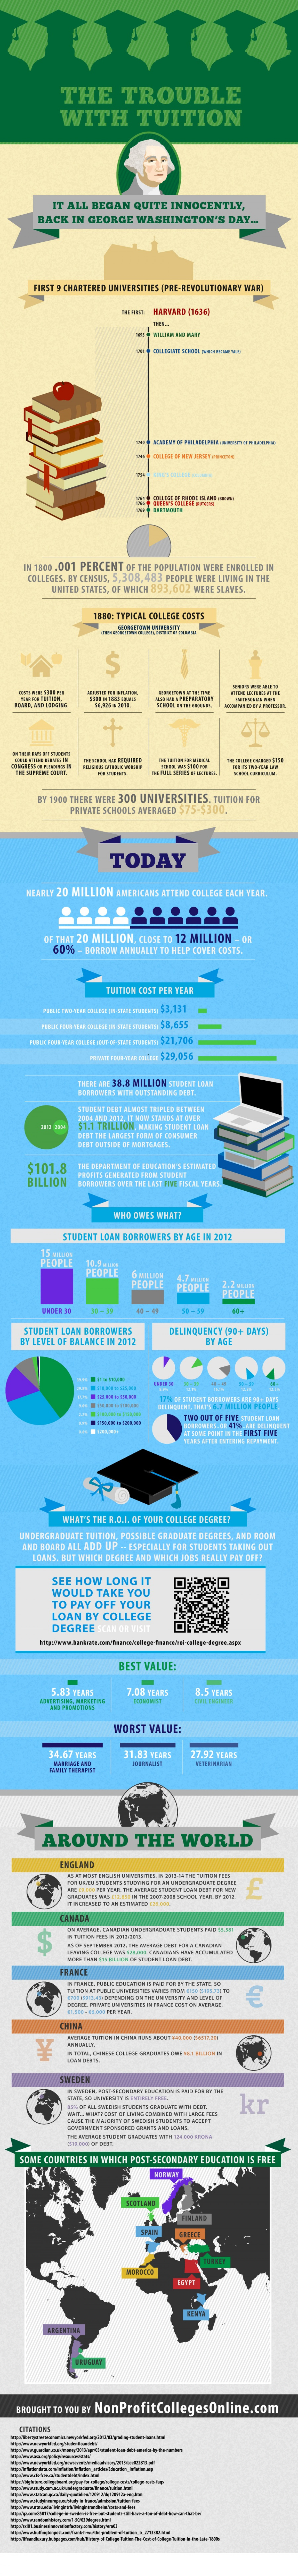 The US Tuition Bubble Infographic